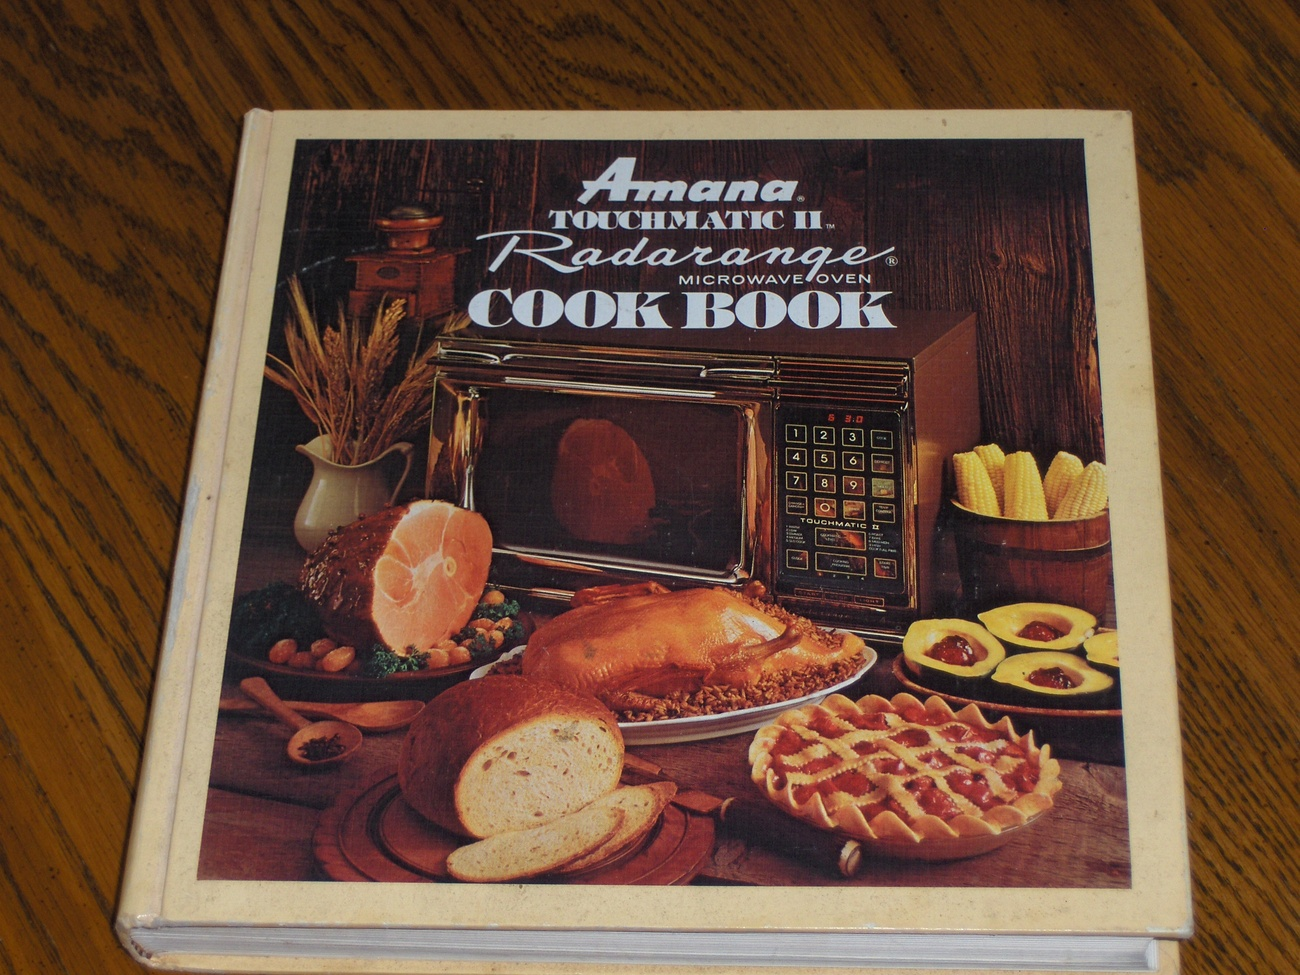 Primary image for Amana Touchmatic 11 Radarange Microwave Oven Cook Book